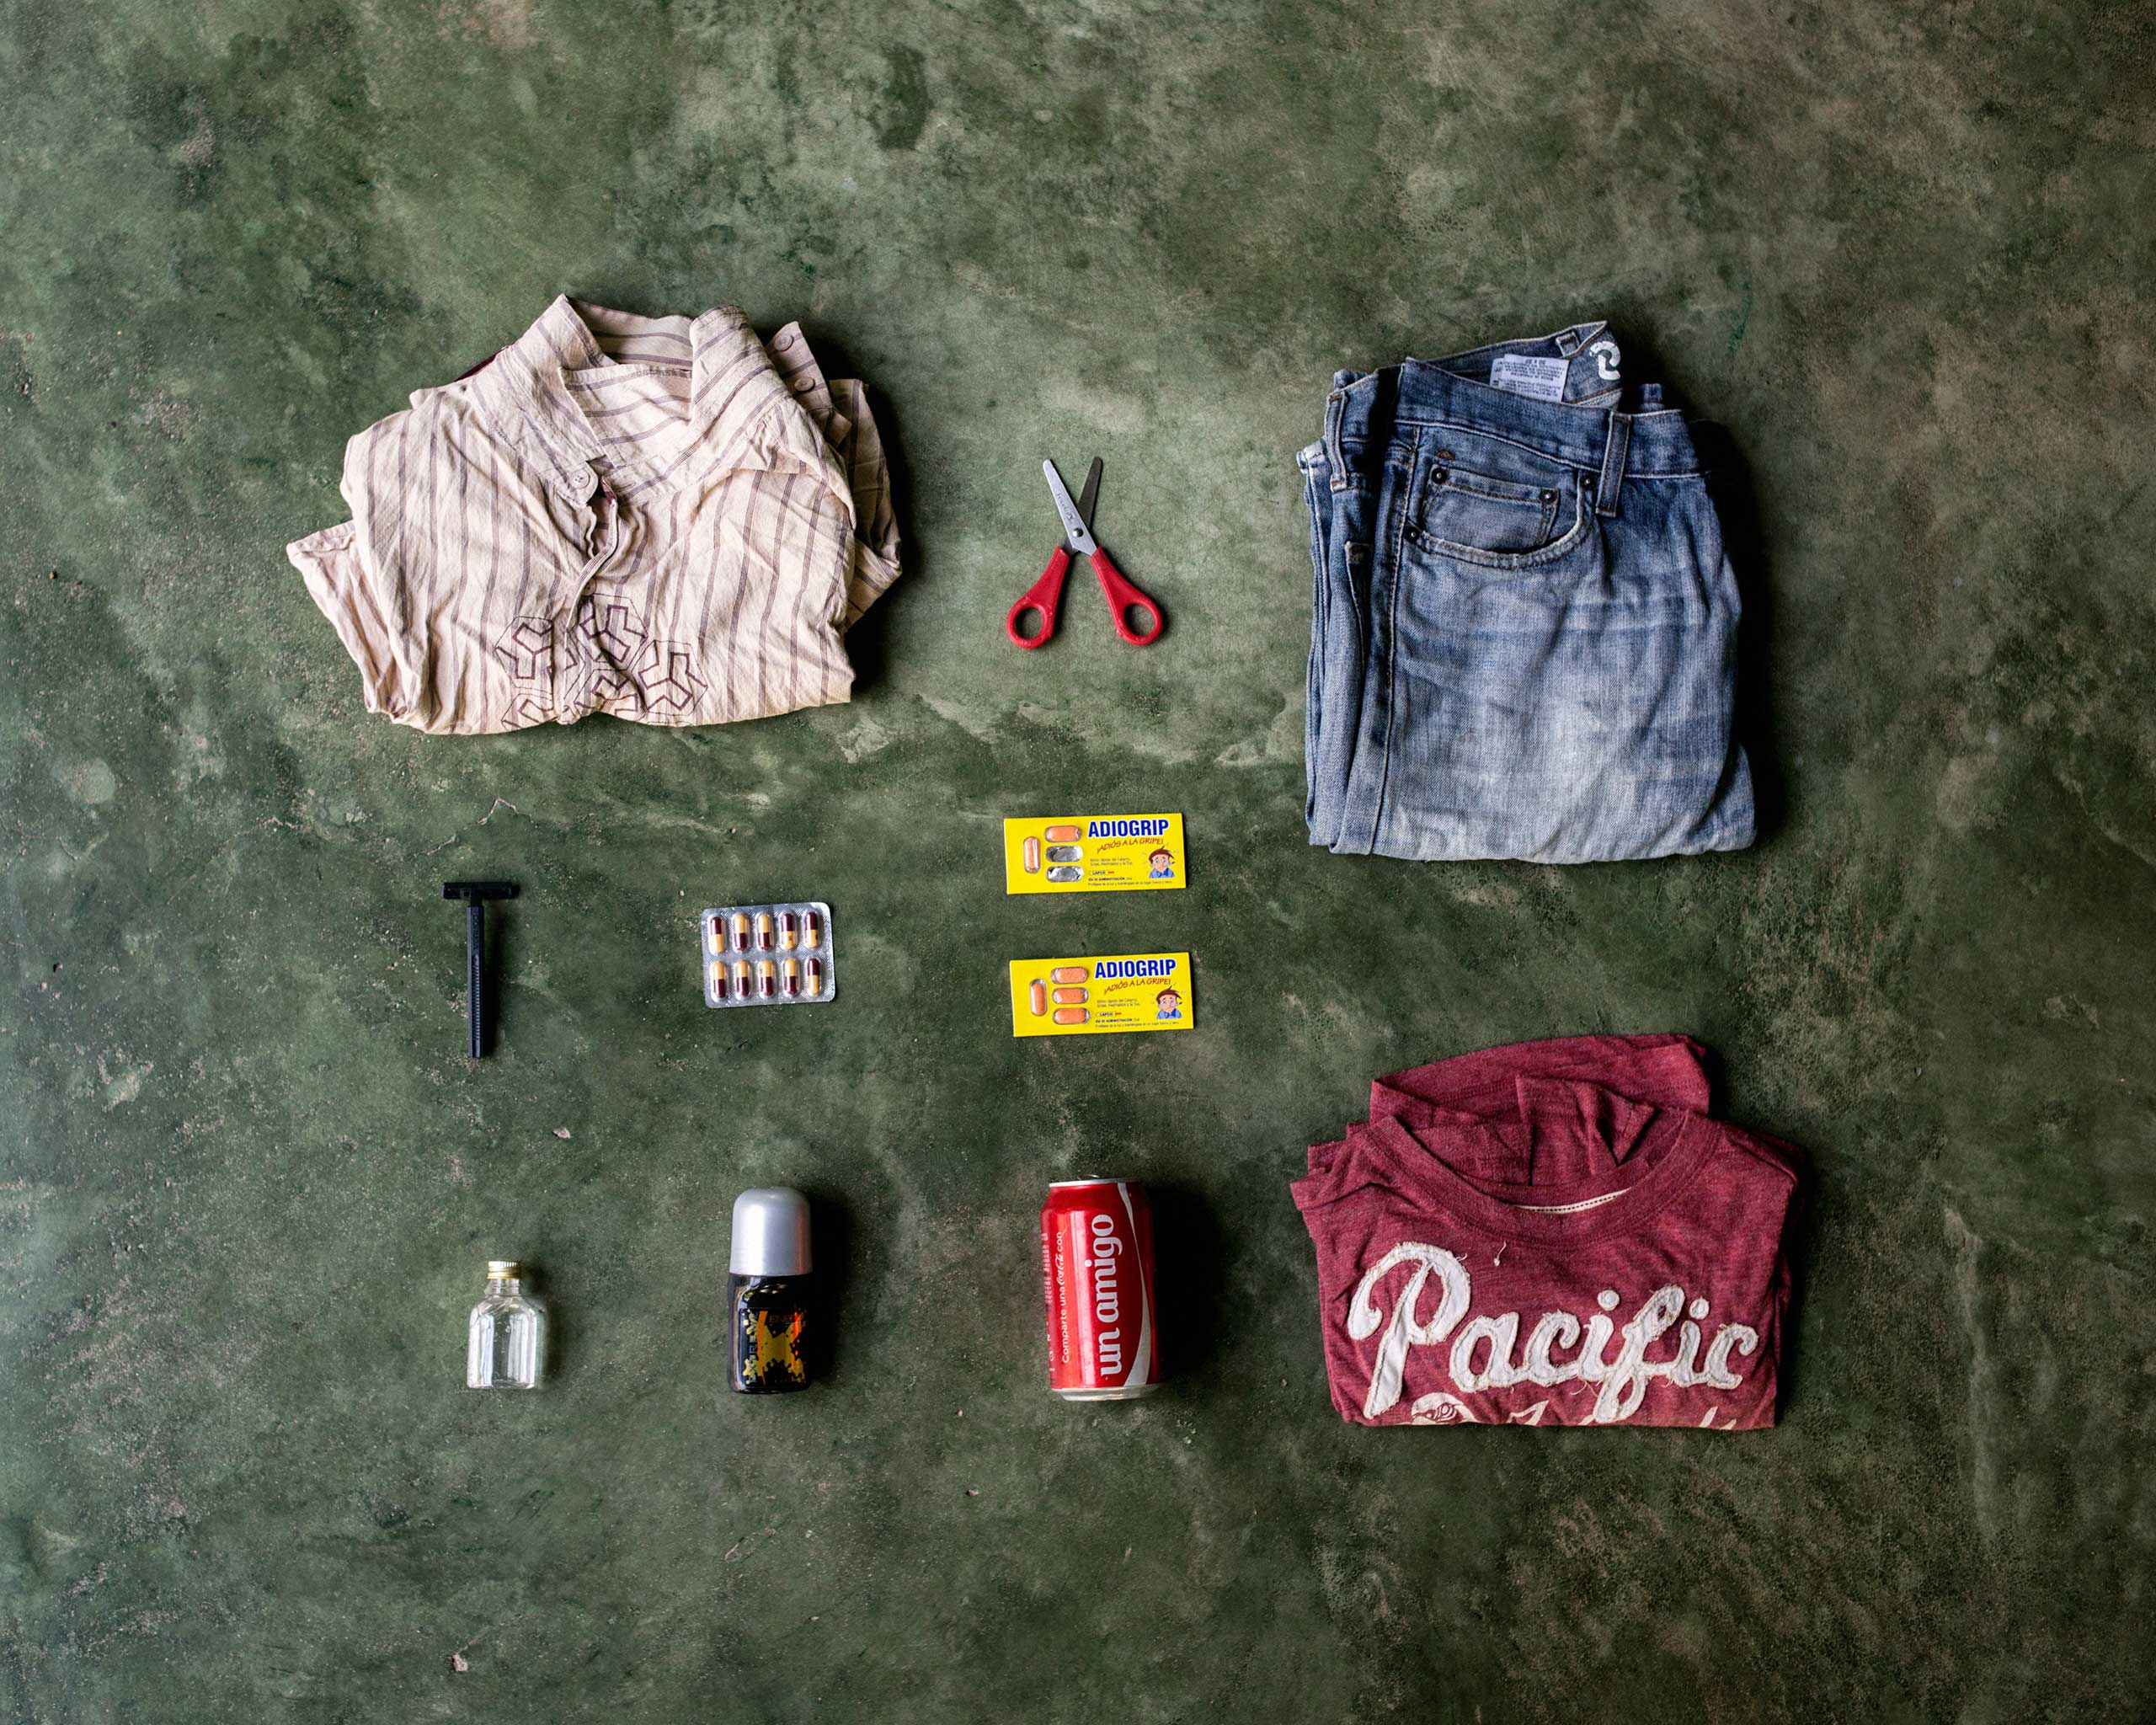 TIME LightBox: In The Bag for NorthCarlos Gomez, 34, from Guatemala. He already has lived in Miami for ten years until he was deported five month ago. He tried to go back in U.S. but was deported again from Mexico. In his bag has a shirt, scissors, a pair of pants, razorblade, pills, shampoo, deodorant, a can of coke and a T-shirt.